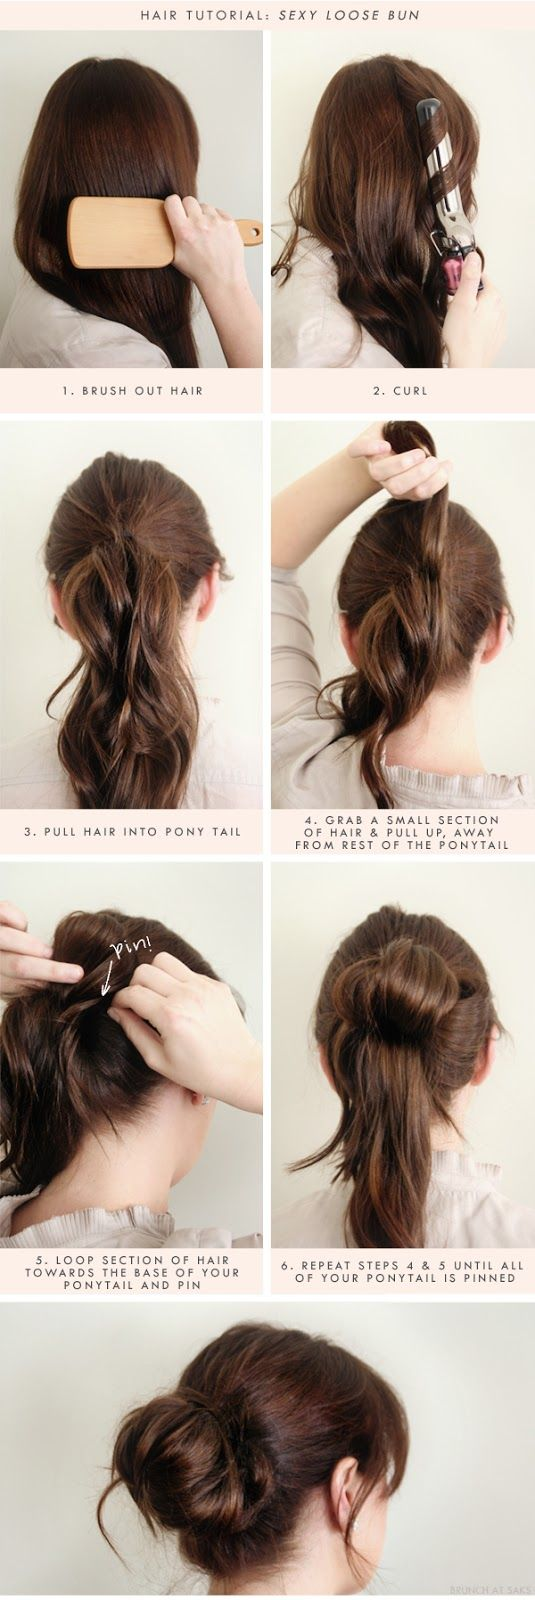 30 best my style images on pinterest | ha ha, hairdos and hairstyles